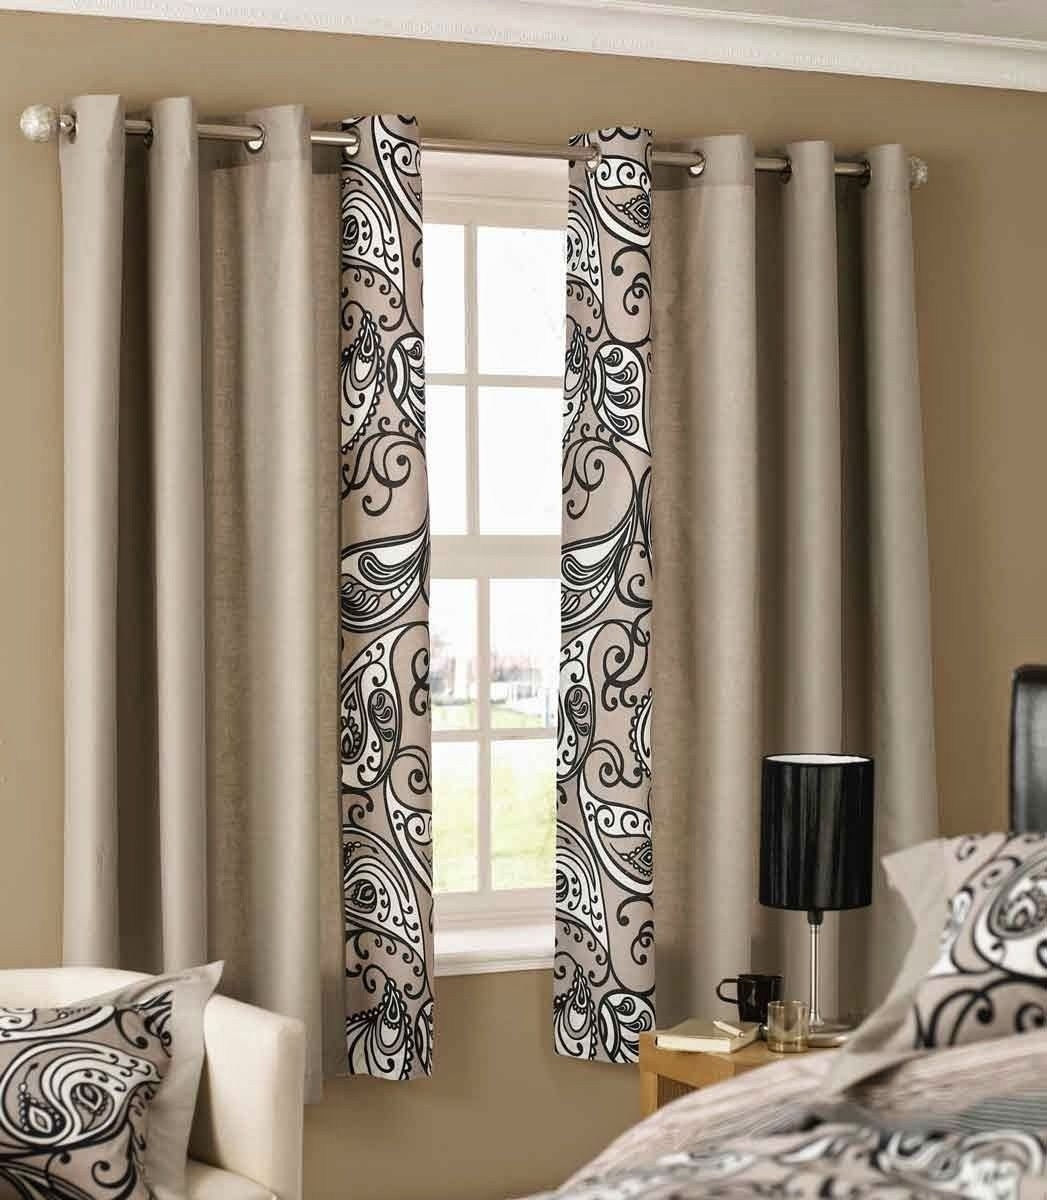 Curtain Curtain Beautiful 96 Inch Blackout Curtains Decor Ideas Throughout 96 Inches Long Curtains (Image 9 of 25)